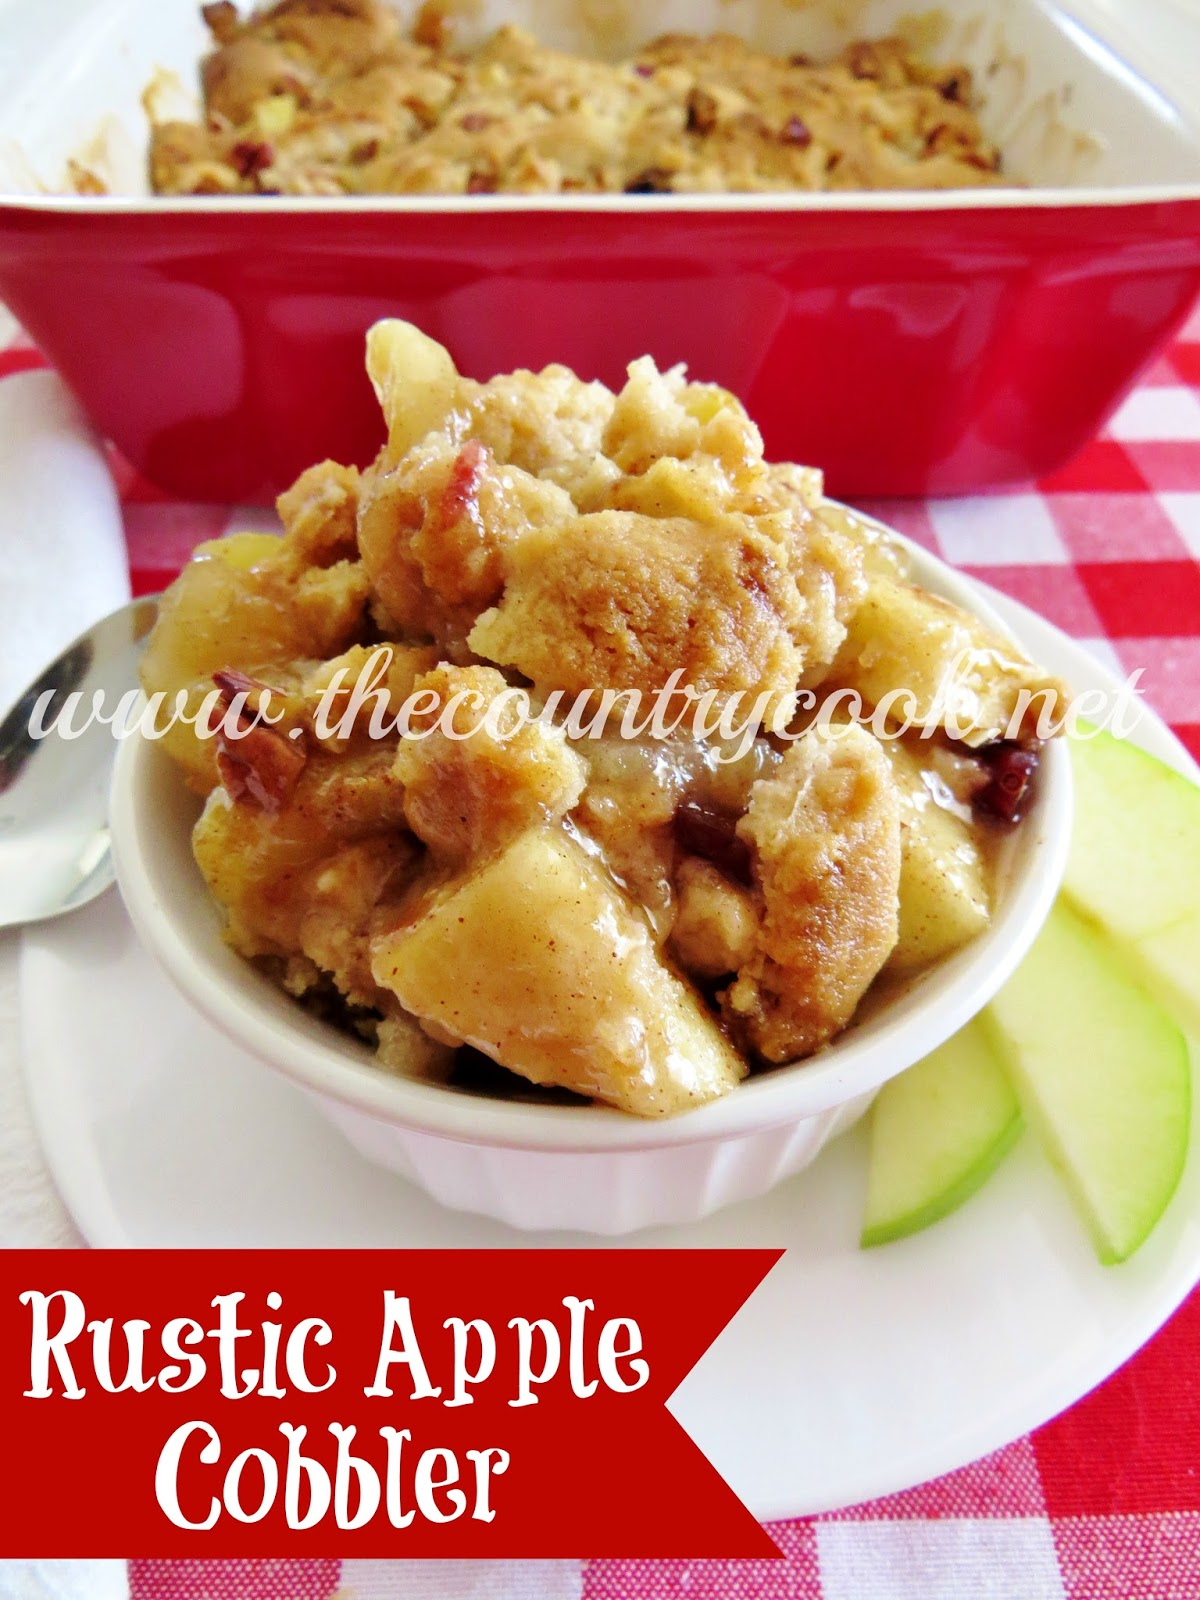 Rustic Apple Cobbler - The Country Cook